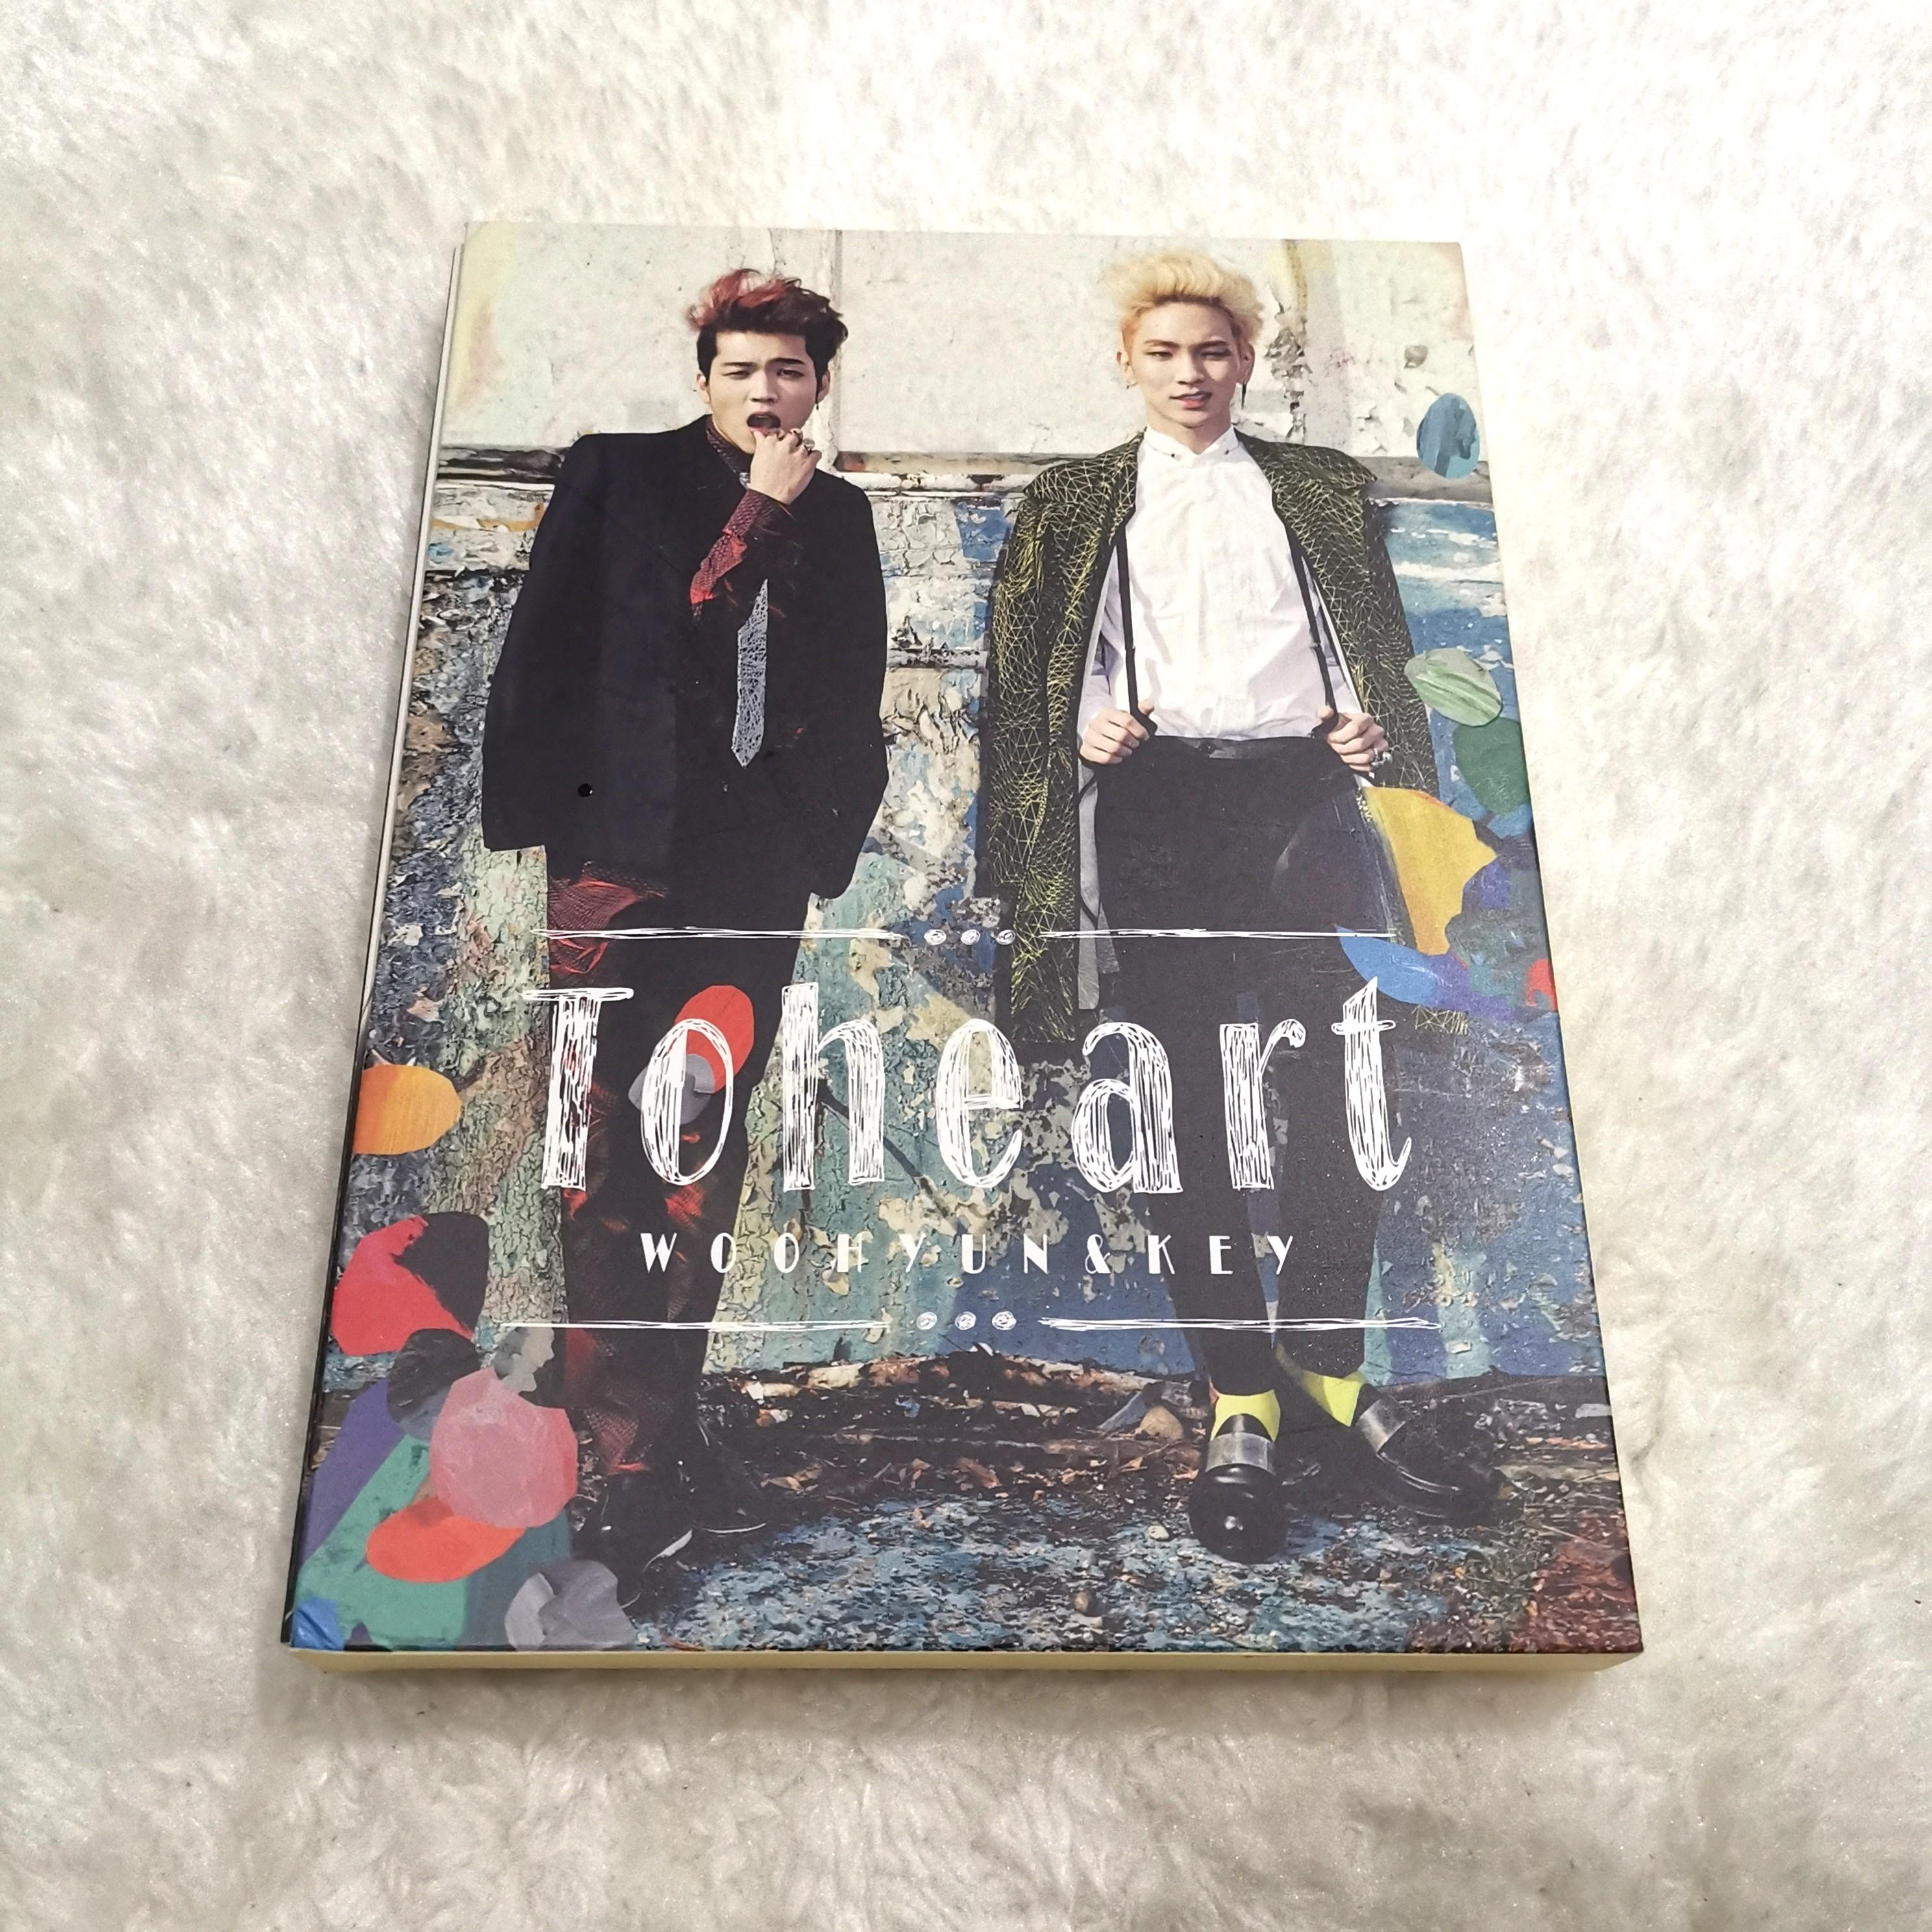 [PRICE REDUCED] TOHEART ALBUM WOOHYUN & KEY WITH POSTER // SHINEE INFINITE